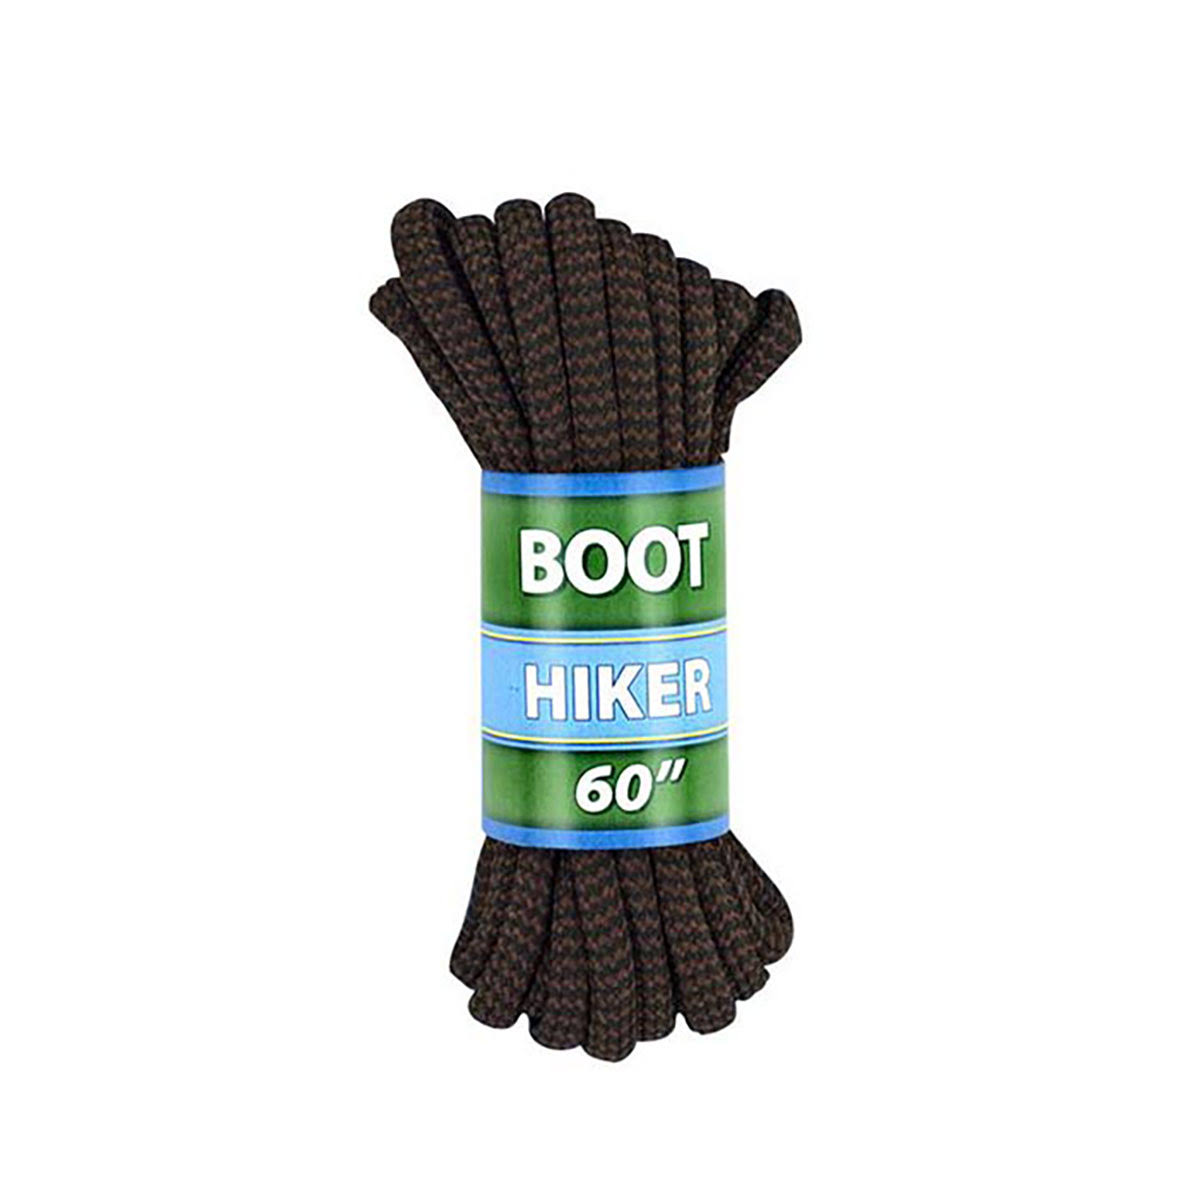 Shoe Gear Alpine Boot Laces - Brown & Black, 60in